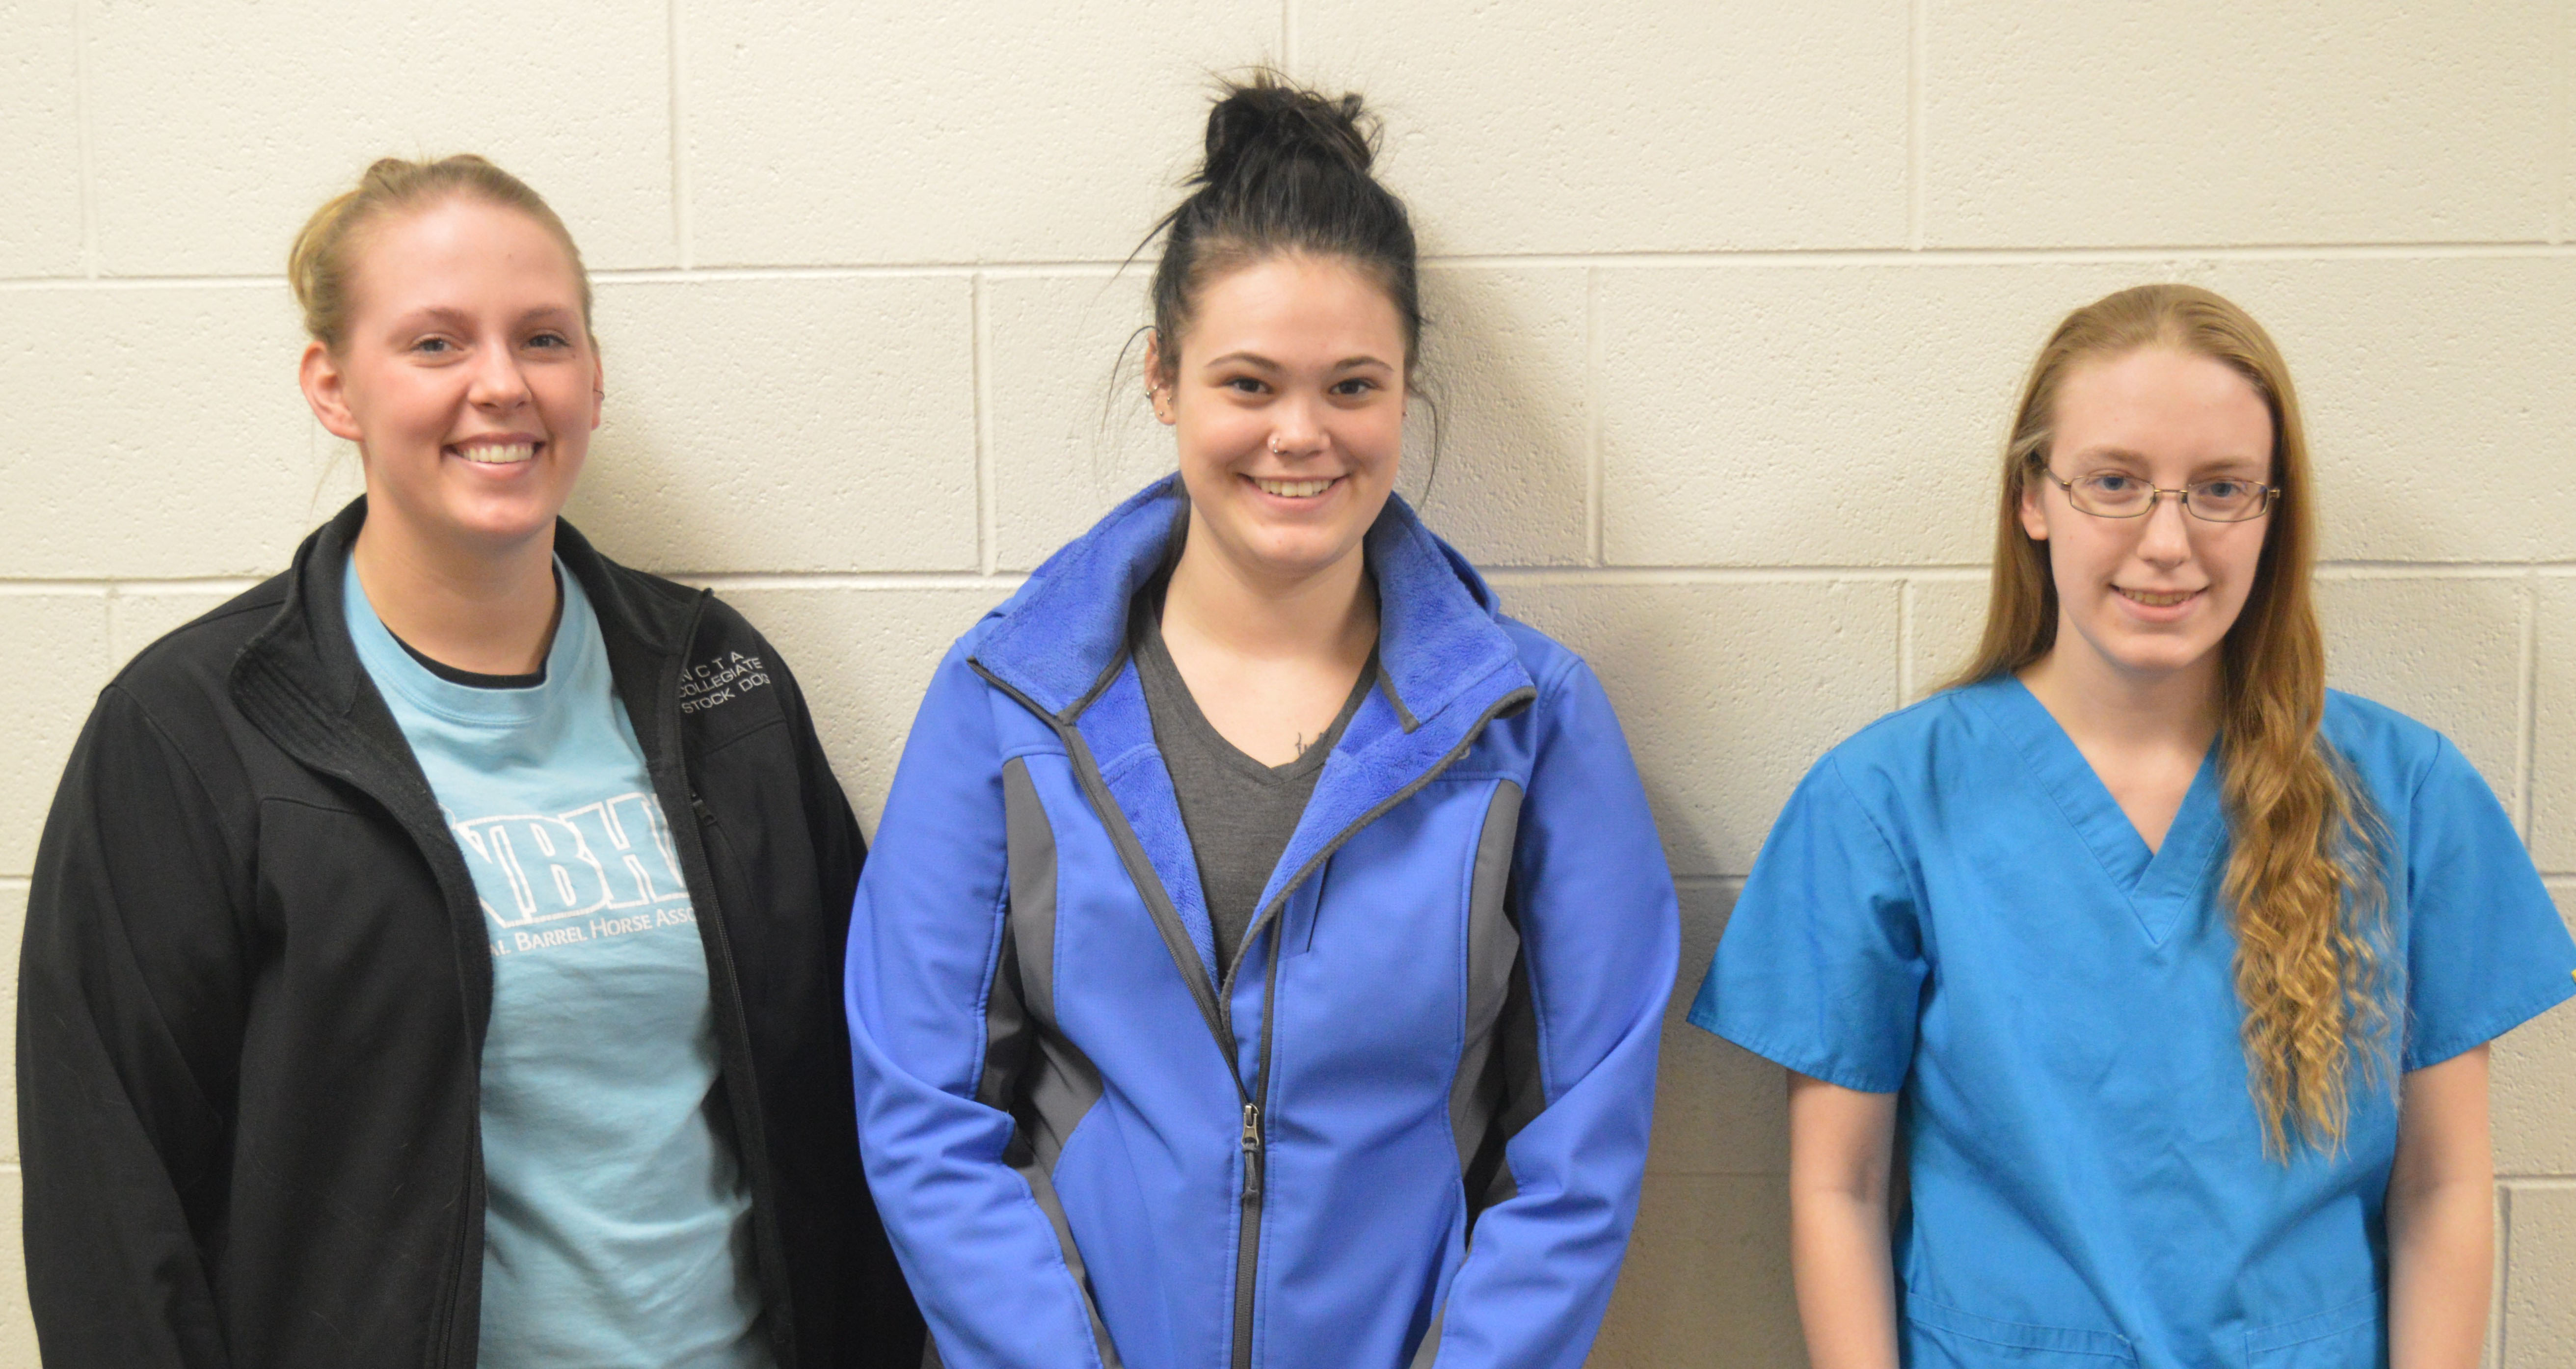 NCTA vet tech students from left, Kaitlynn Chubbuck, Sierra Bogle and Brooke Bennett, were each a recipient of a $1,000 scholarship from Lancaster County Farm Bureau members for 2017-2018. Not pictured is Baily Holt, a livestock management major. (Thomas/NCTA News photo)